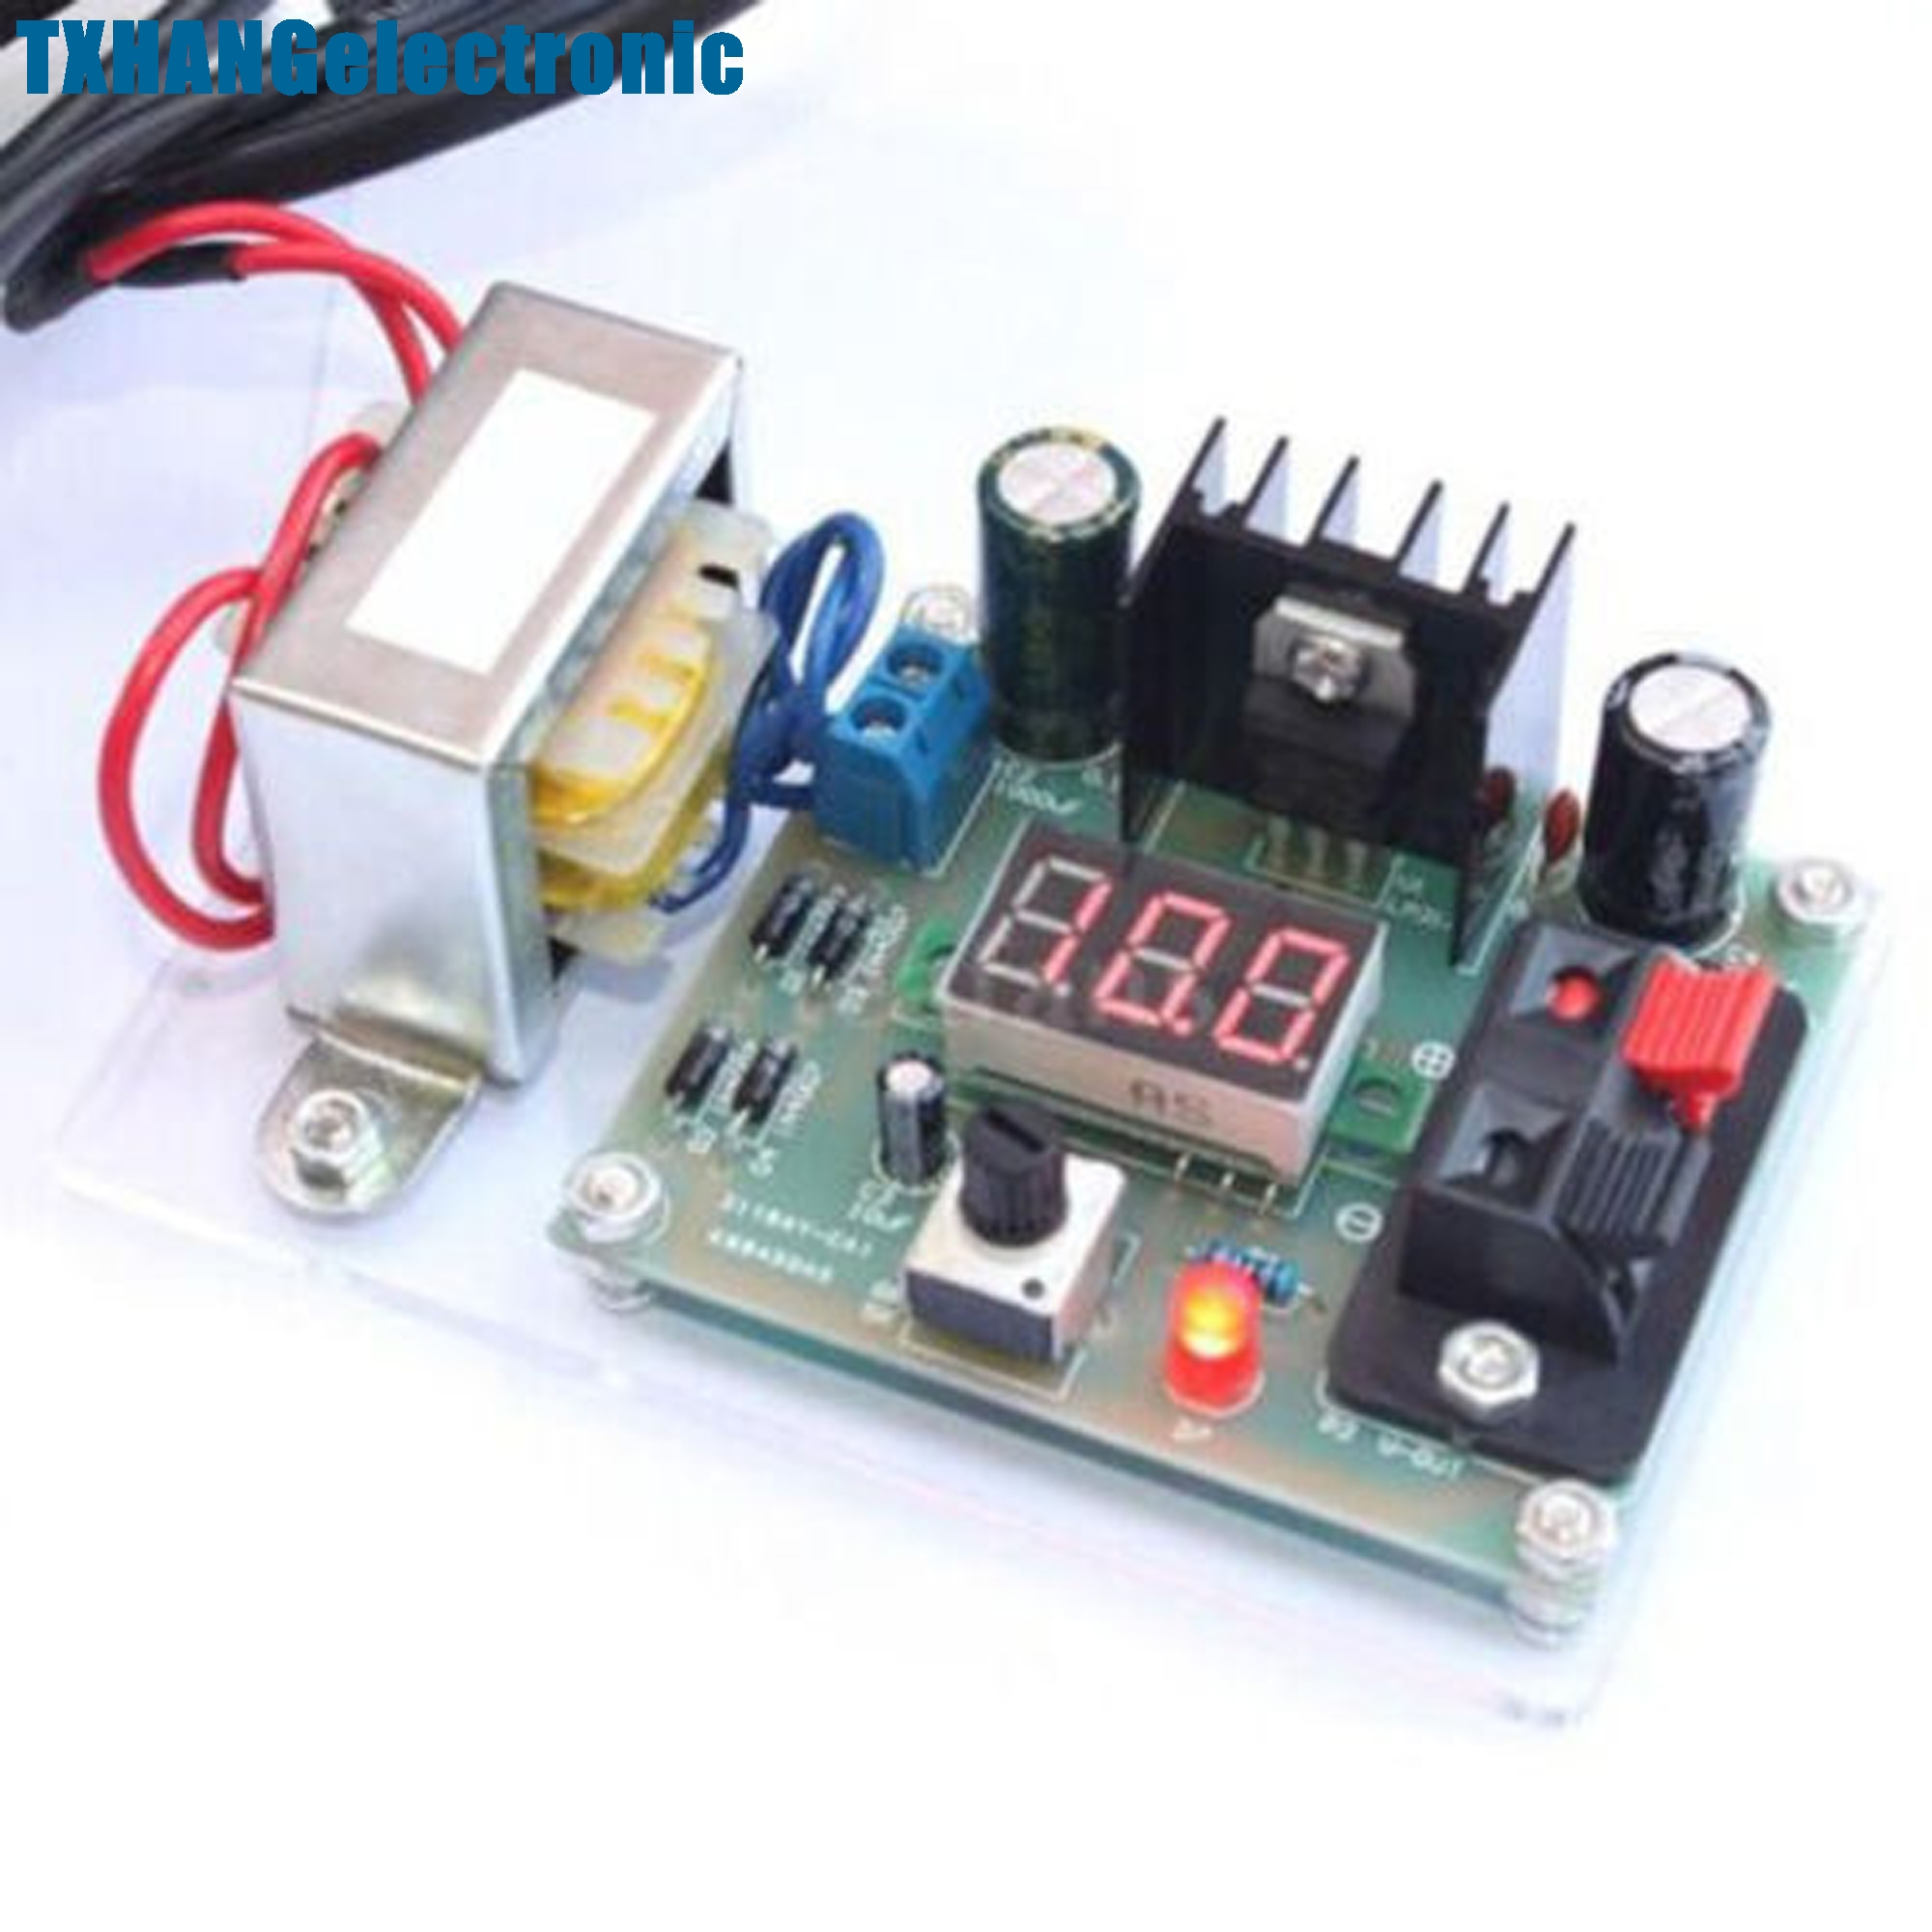 Continuously Adjustable Regulated Dc Power Supply Diy Kit Lm317 125 12v